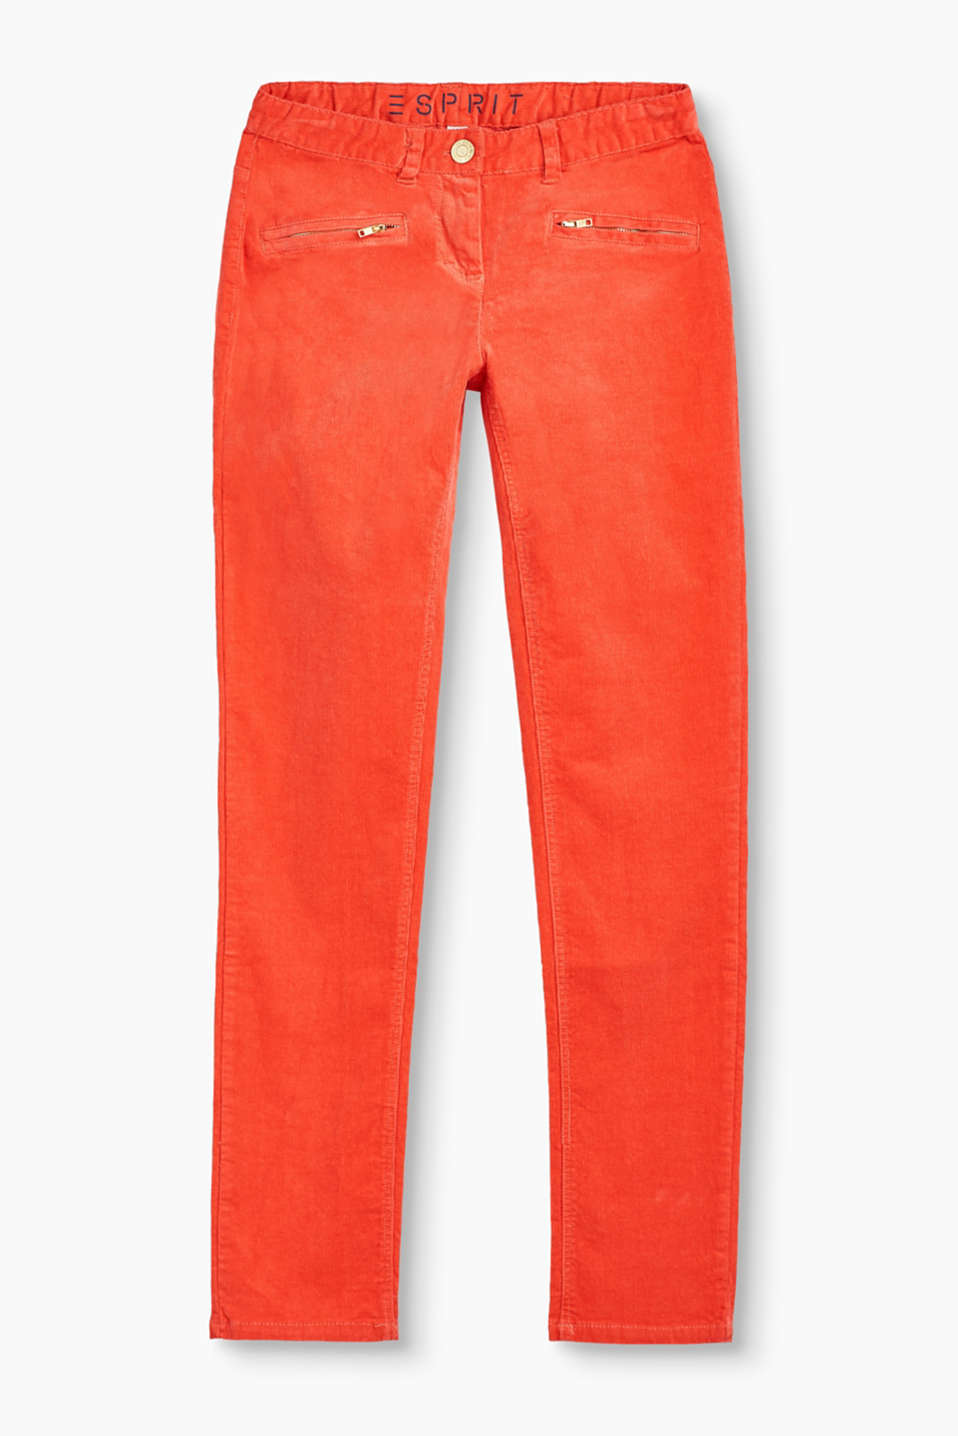 Esprit - Velvety corduroy trousers in stretchy cotton